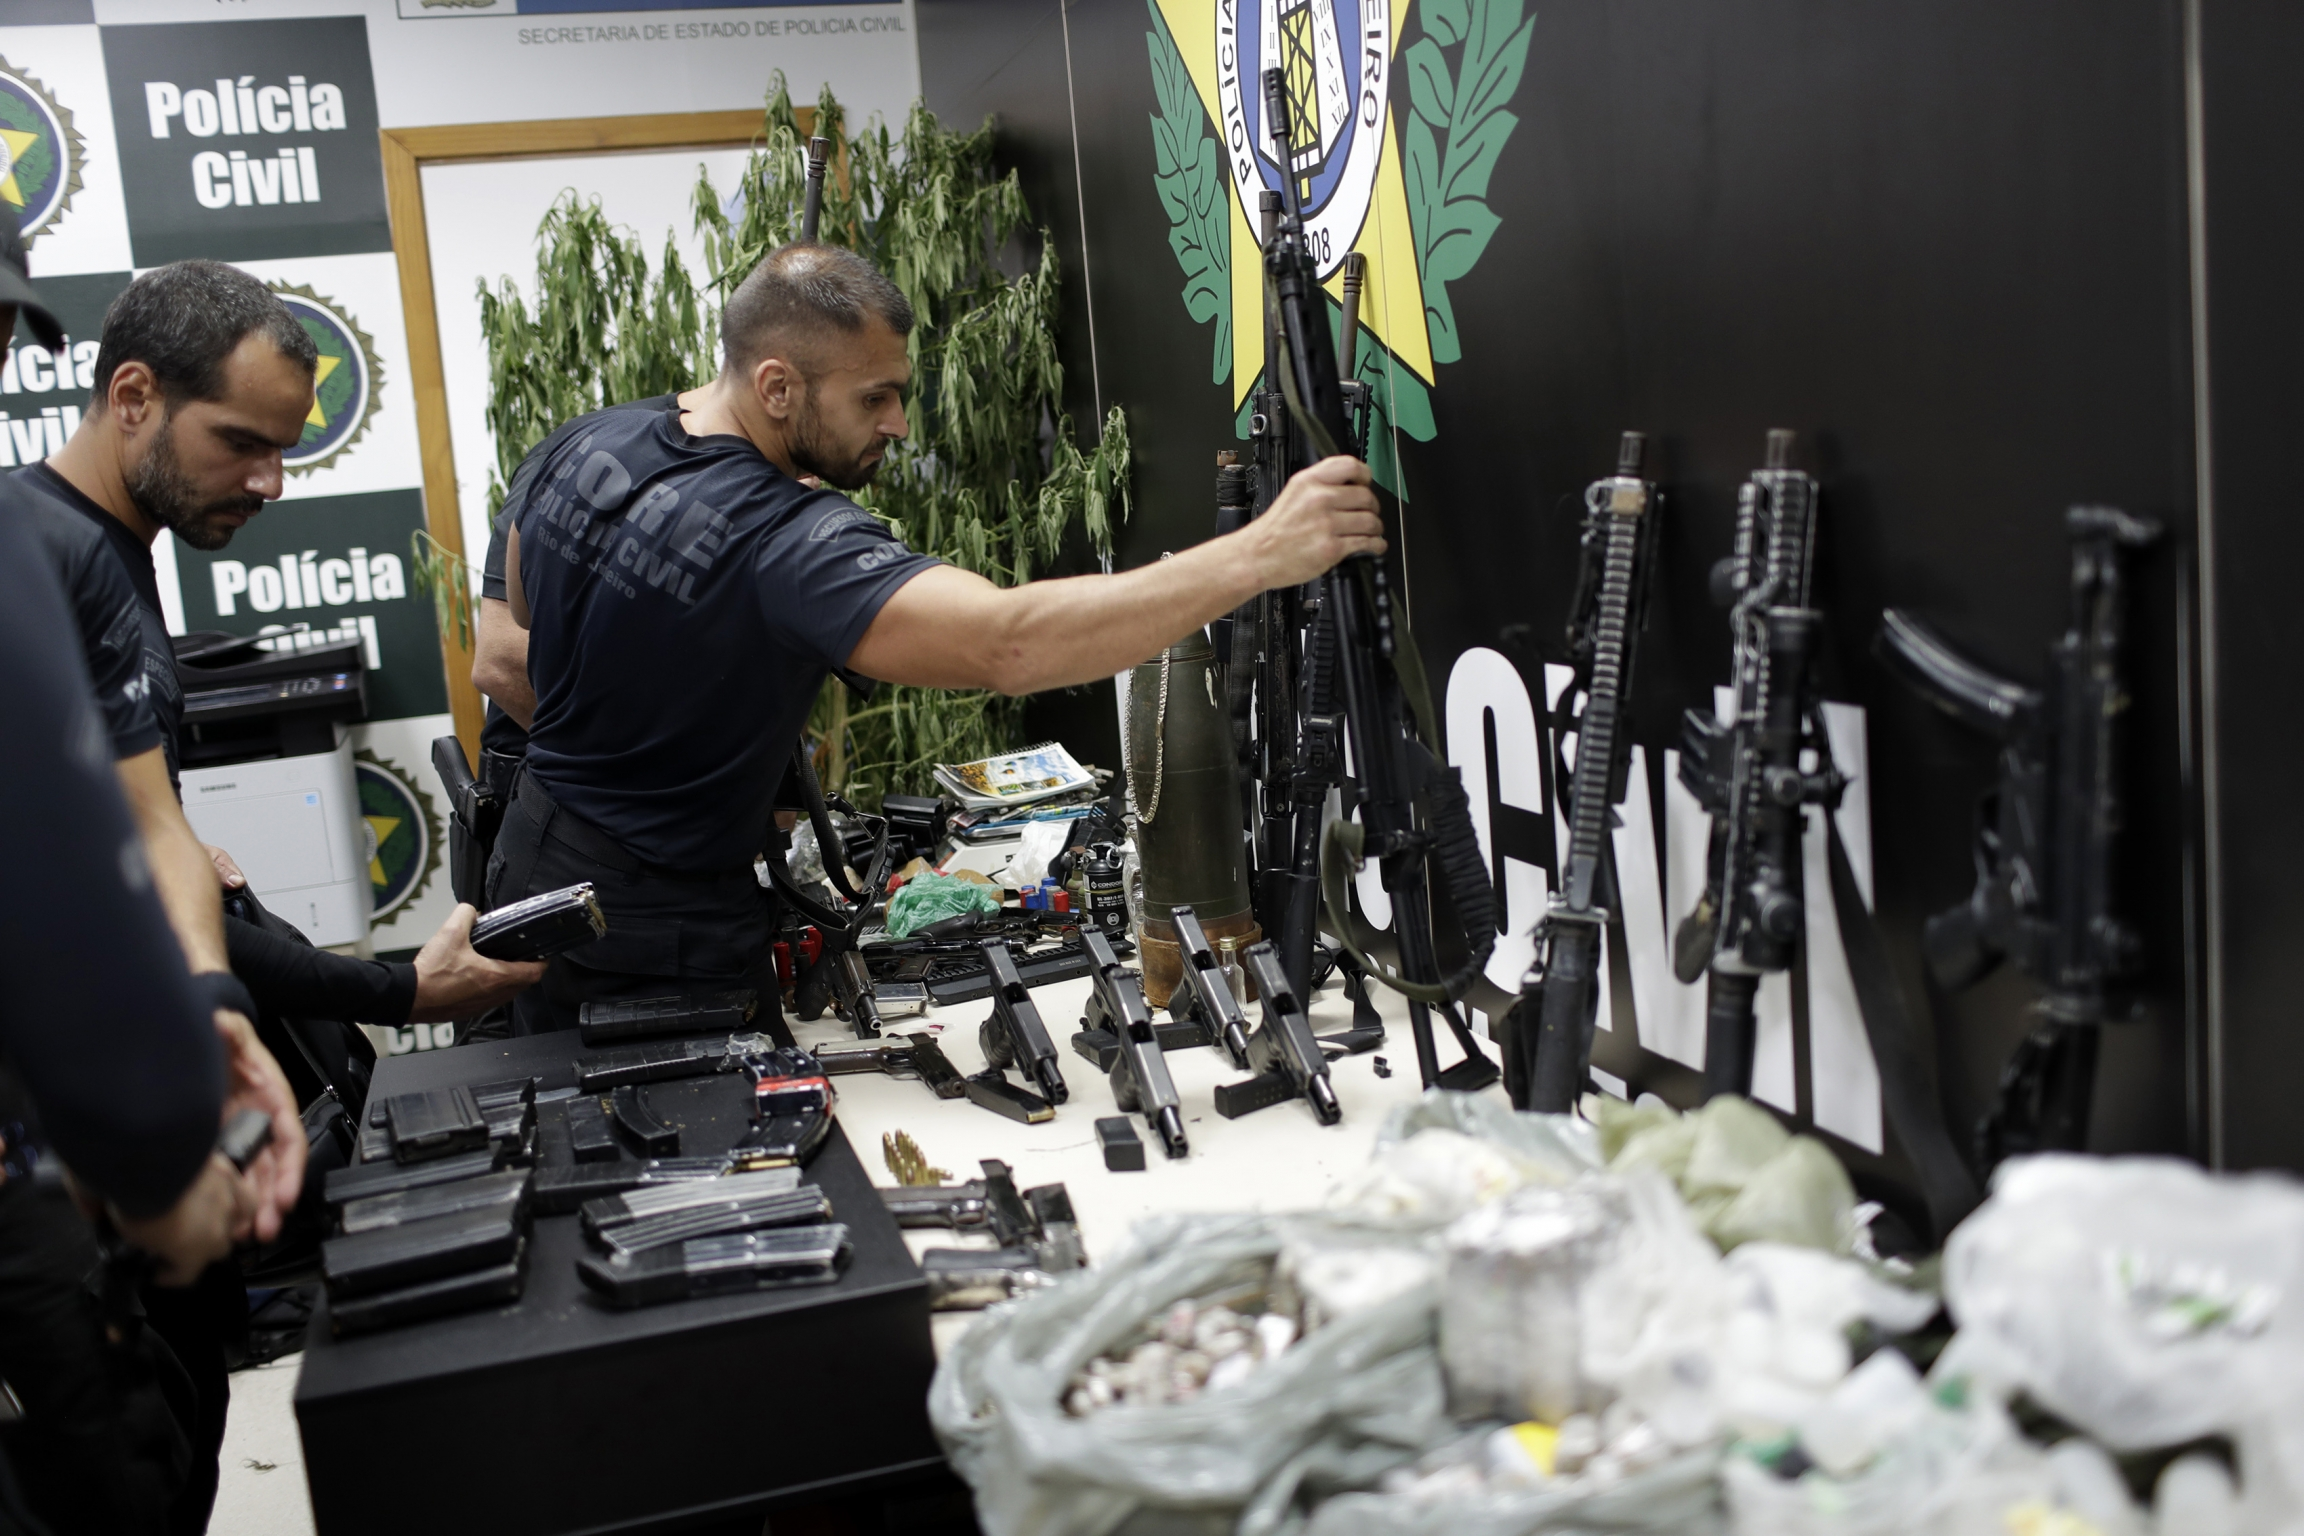 Weapons and drugs seized during a police raid are displayed for the press at city police headquarters in Rio de Janeiro, Brazil, May 6, 2021.